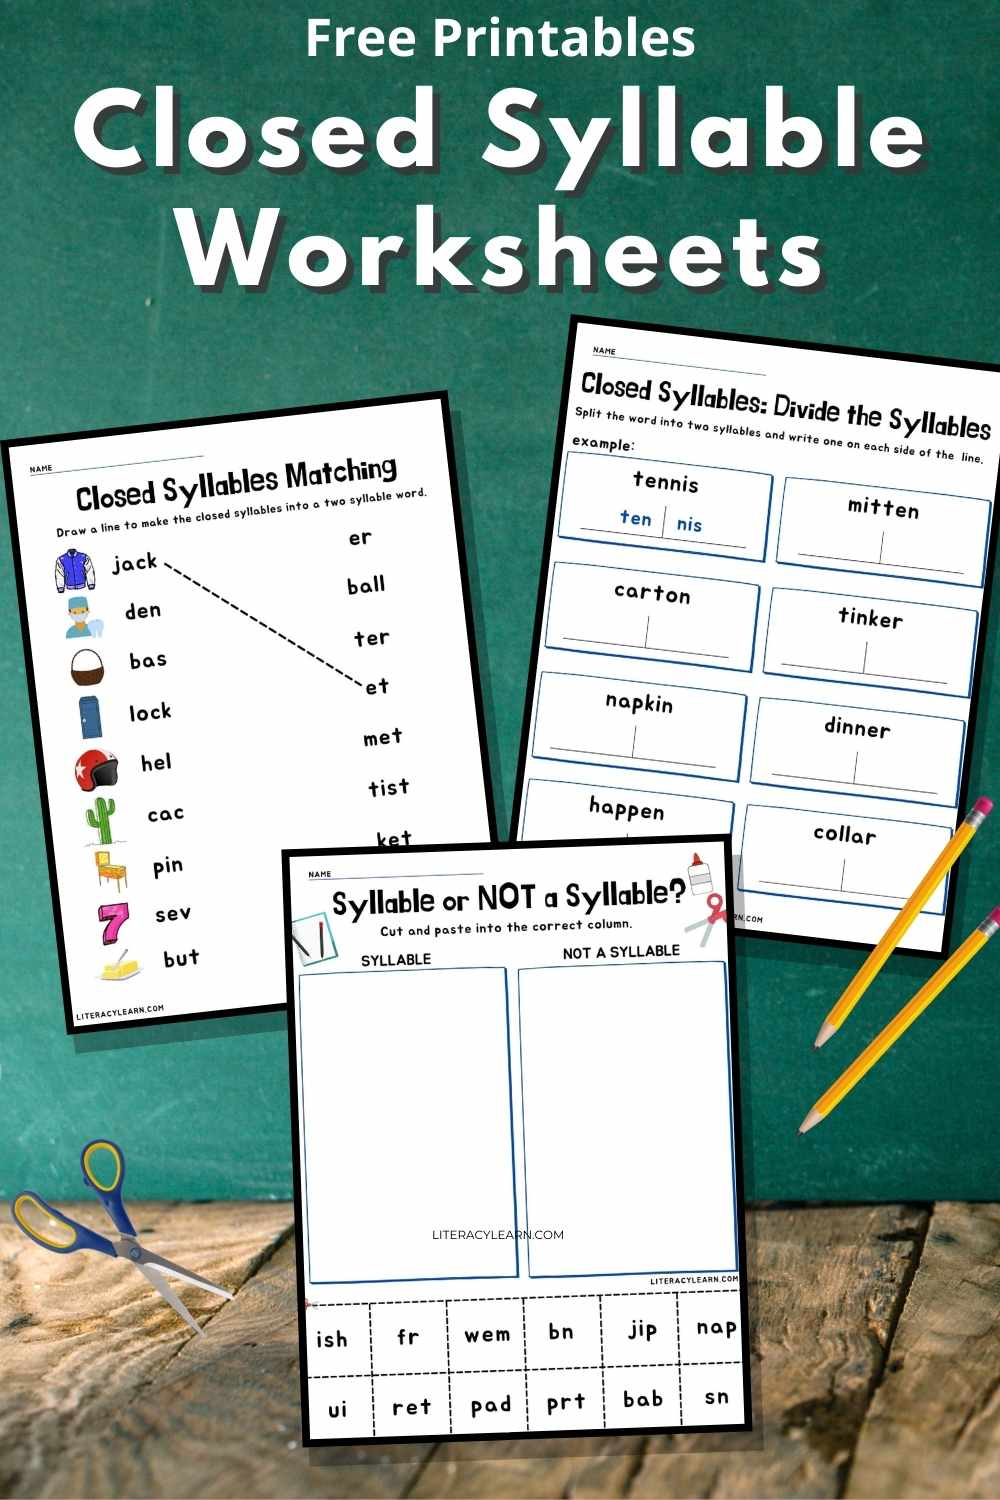 """Three worksheets on a green background with the text, """"Free Printables Closed Syllable Worksheets."""""""